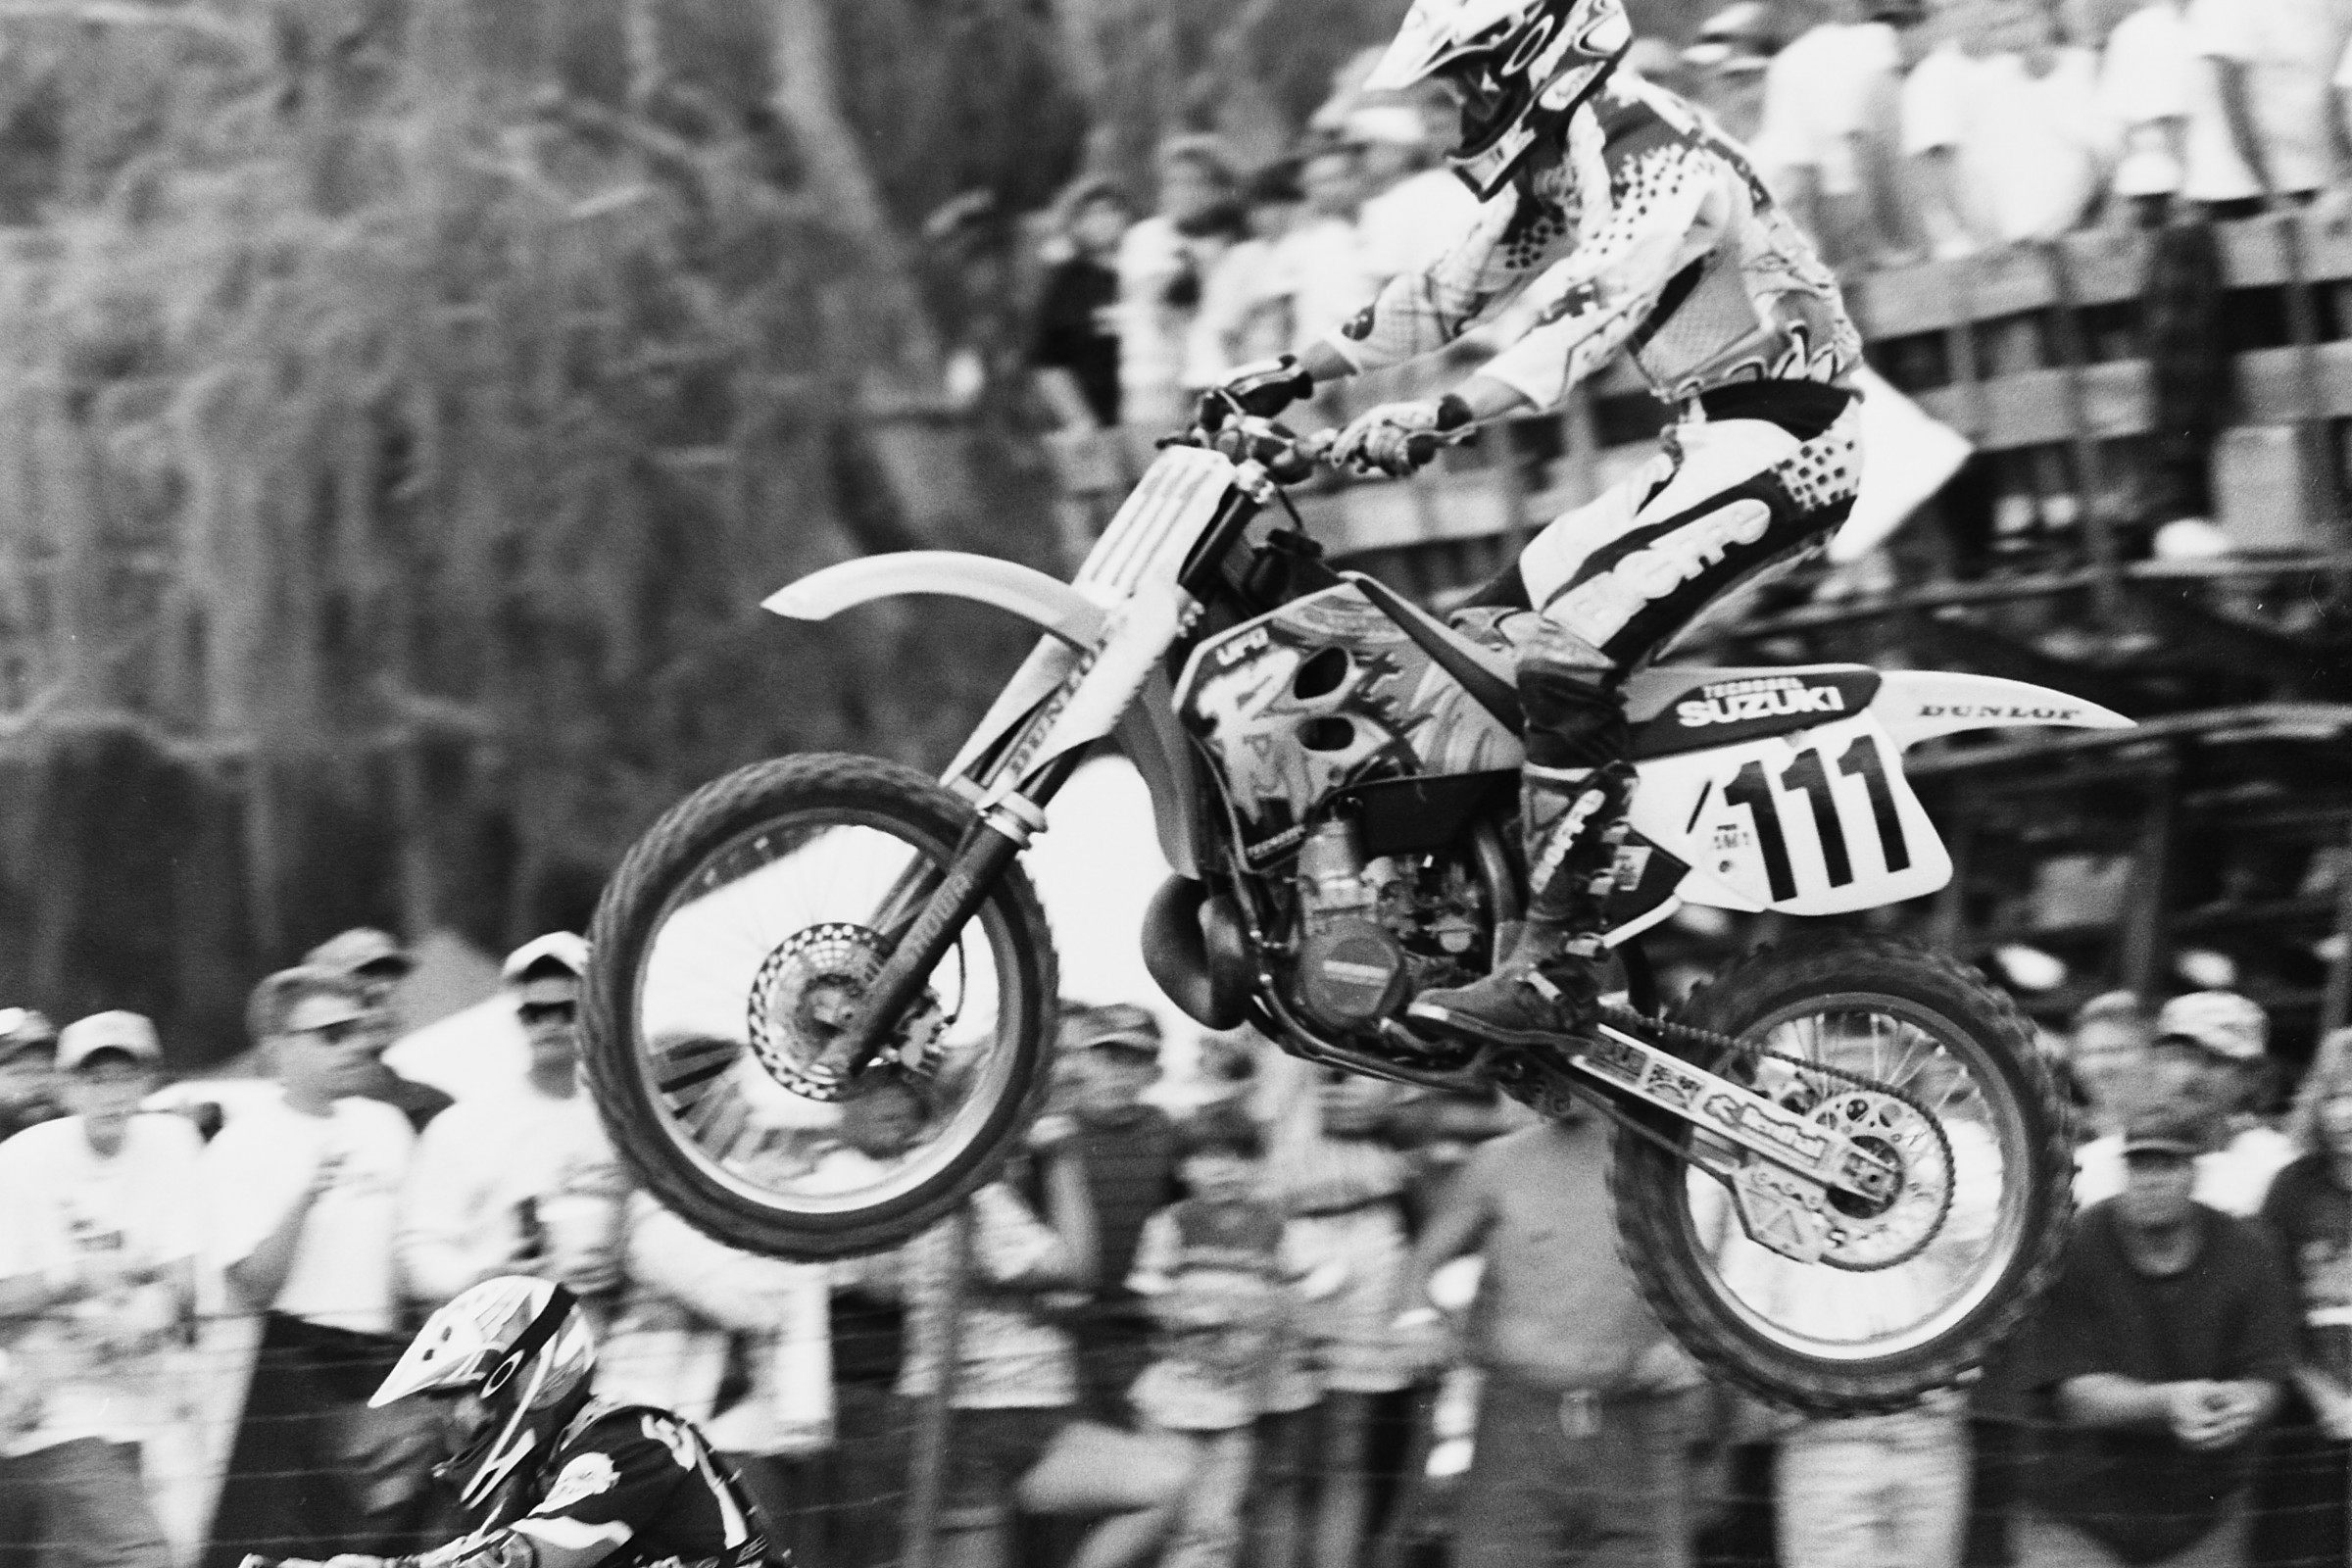 Albertyn would go on to win the 1999 250MX Championship.